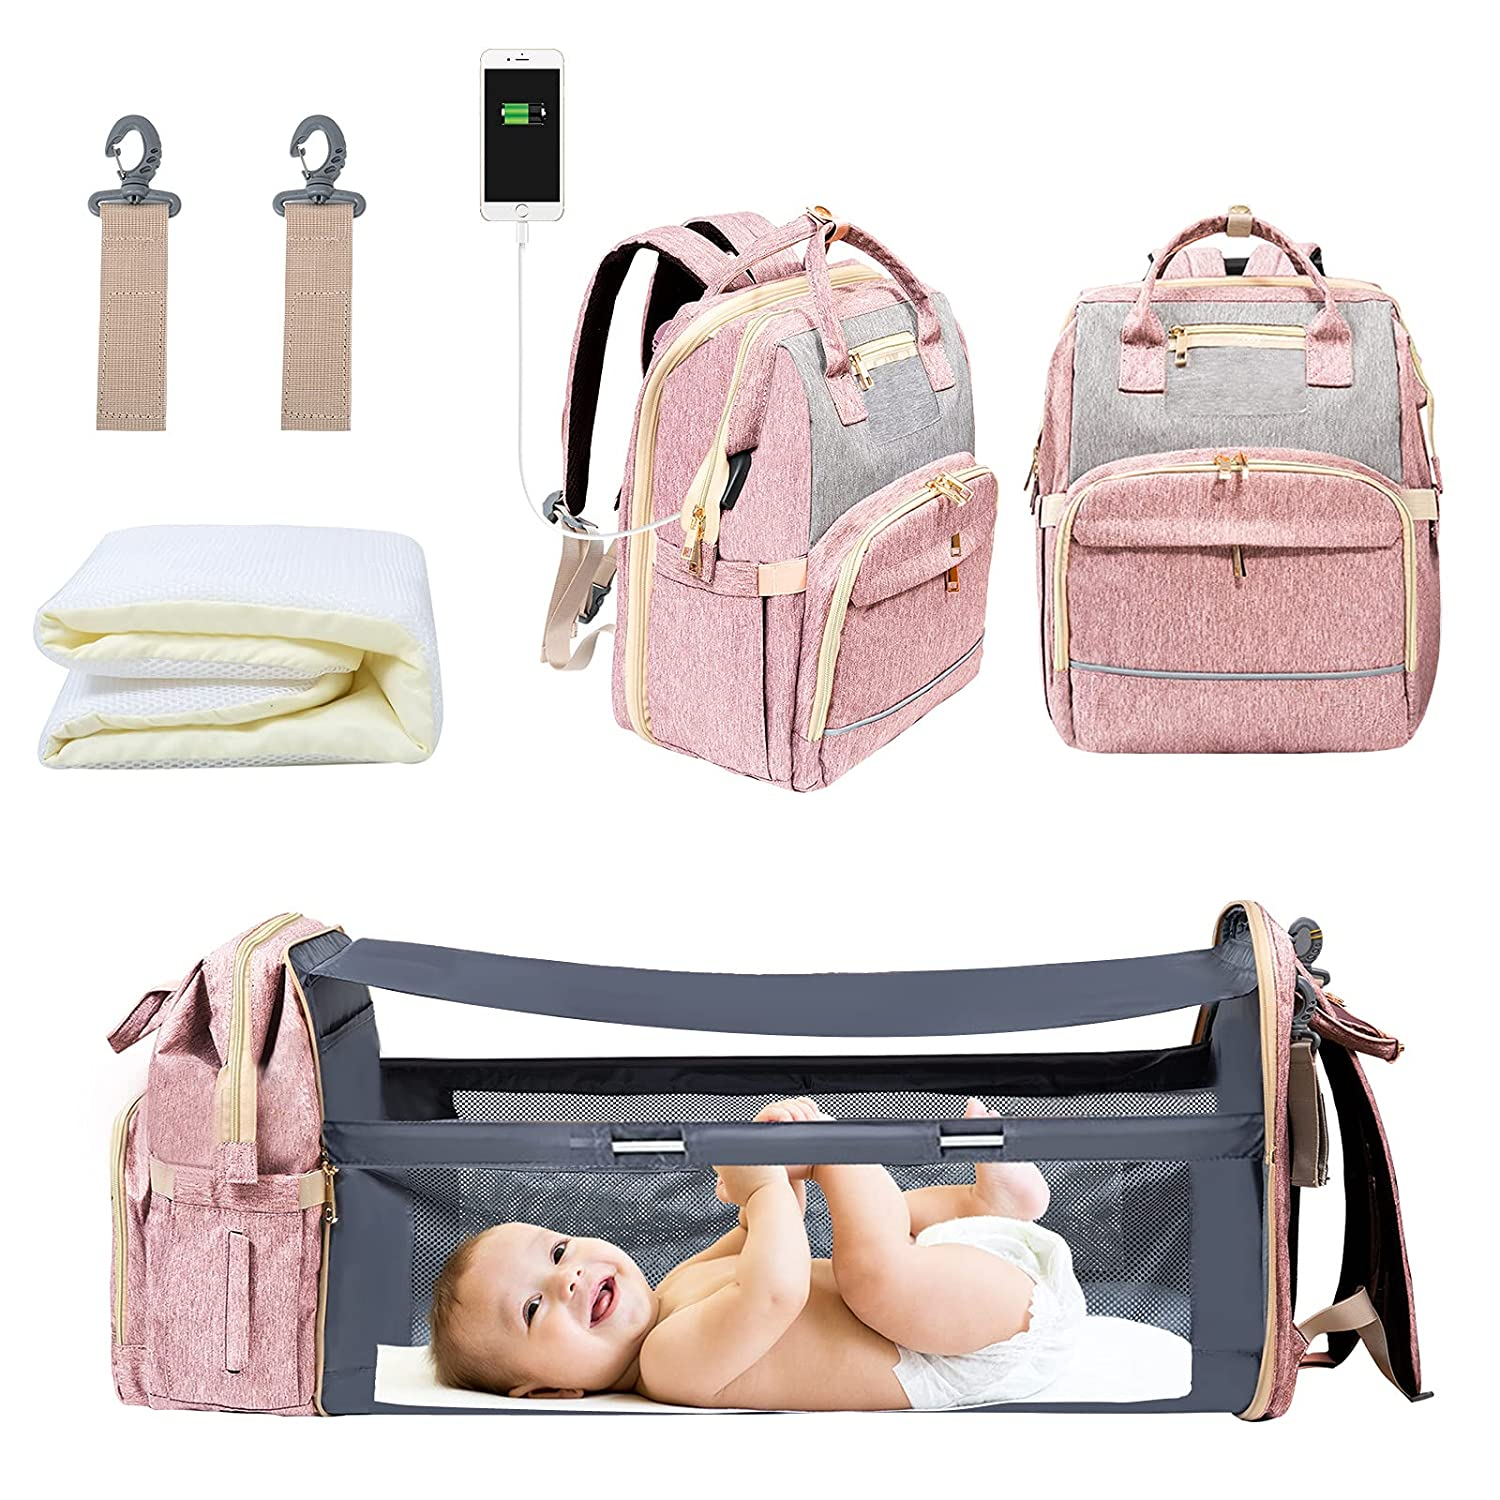 WiseWater Diaper Bag Backpack with Changing Station, Portable Travel Bassinets for Babies, Waterproof Mommy Bag with Foldable Crib USB Charging Port, The Changing Bed for Baby Girls Boys (Pink)